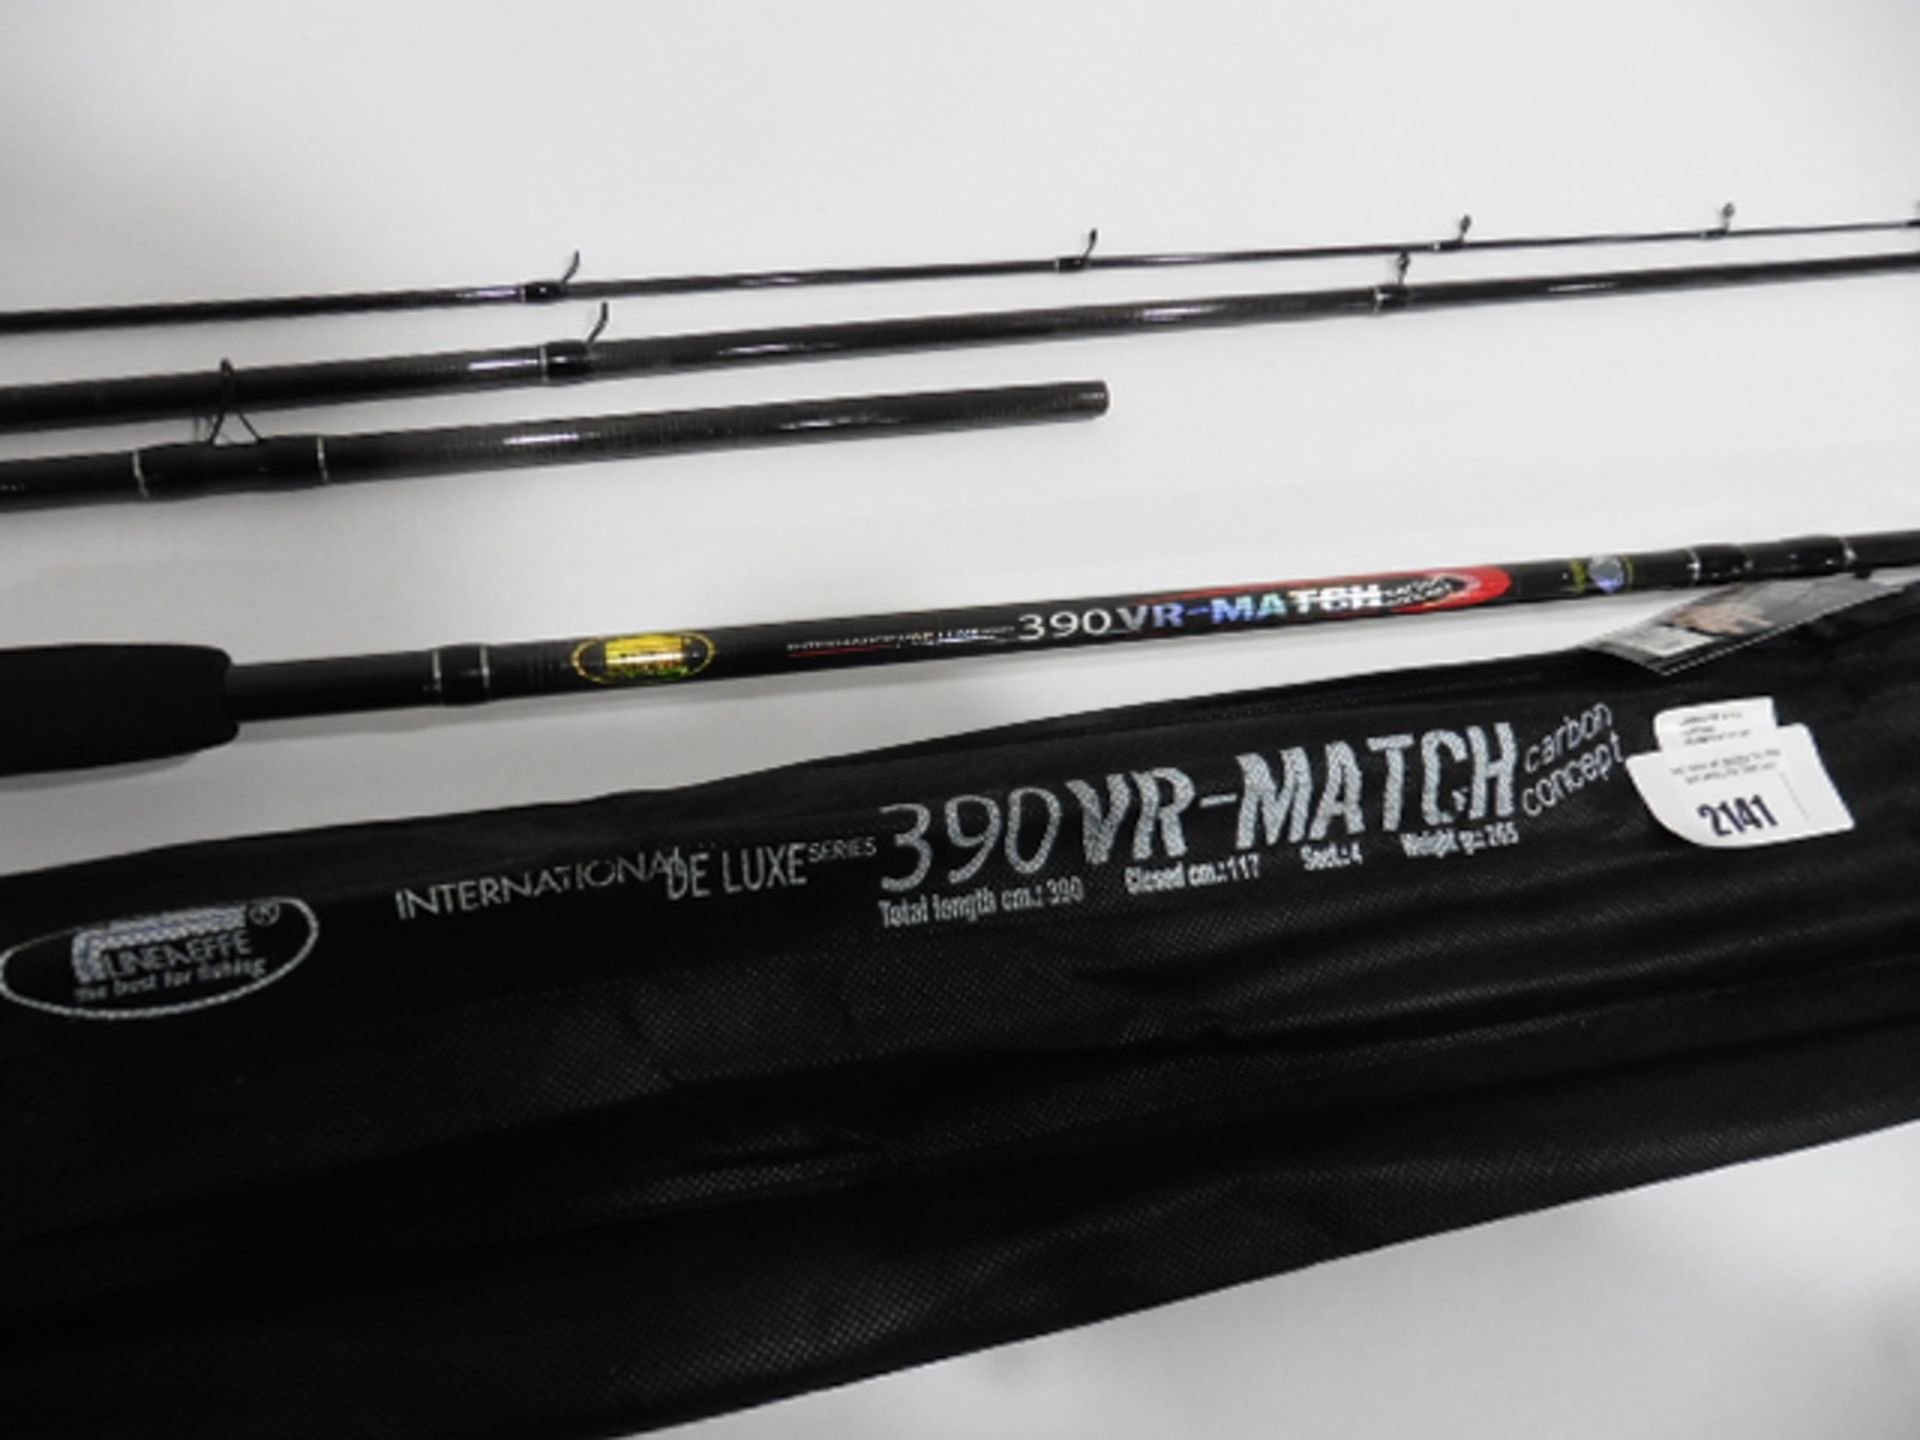 Lineaeffe Deluxe 390VR carbon concept 4 piece Match rod - Image 2 of 2